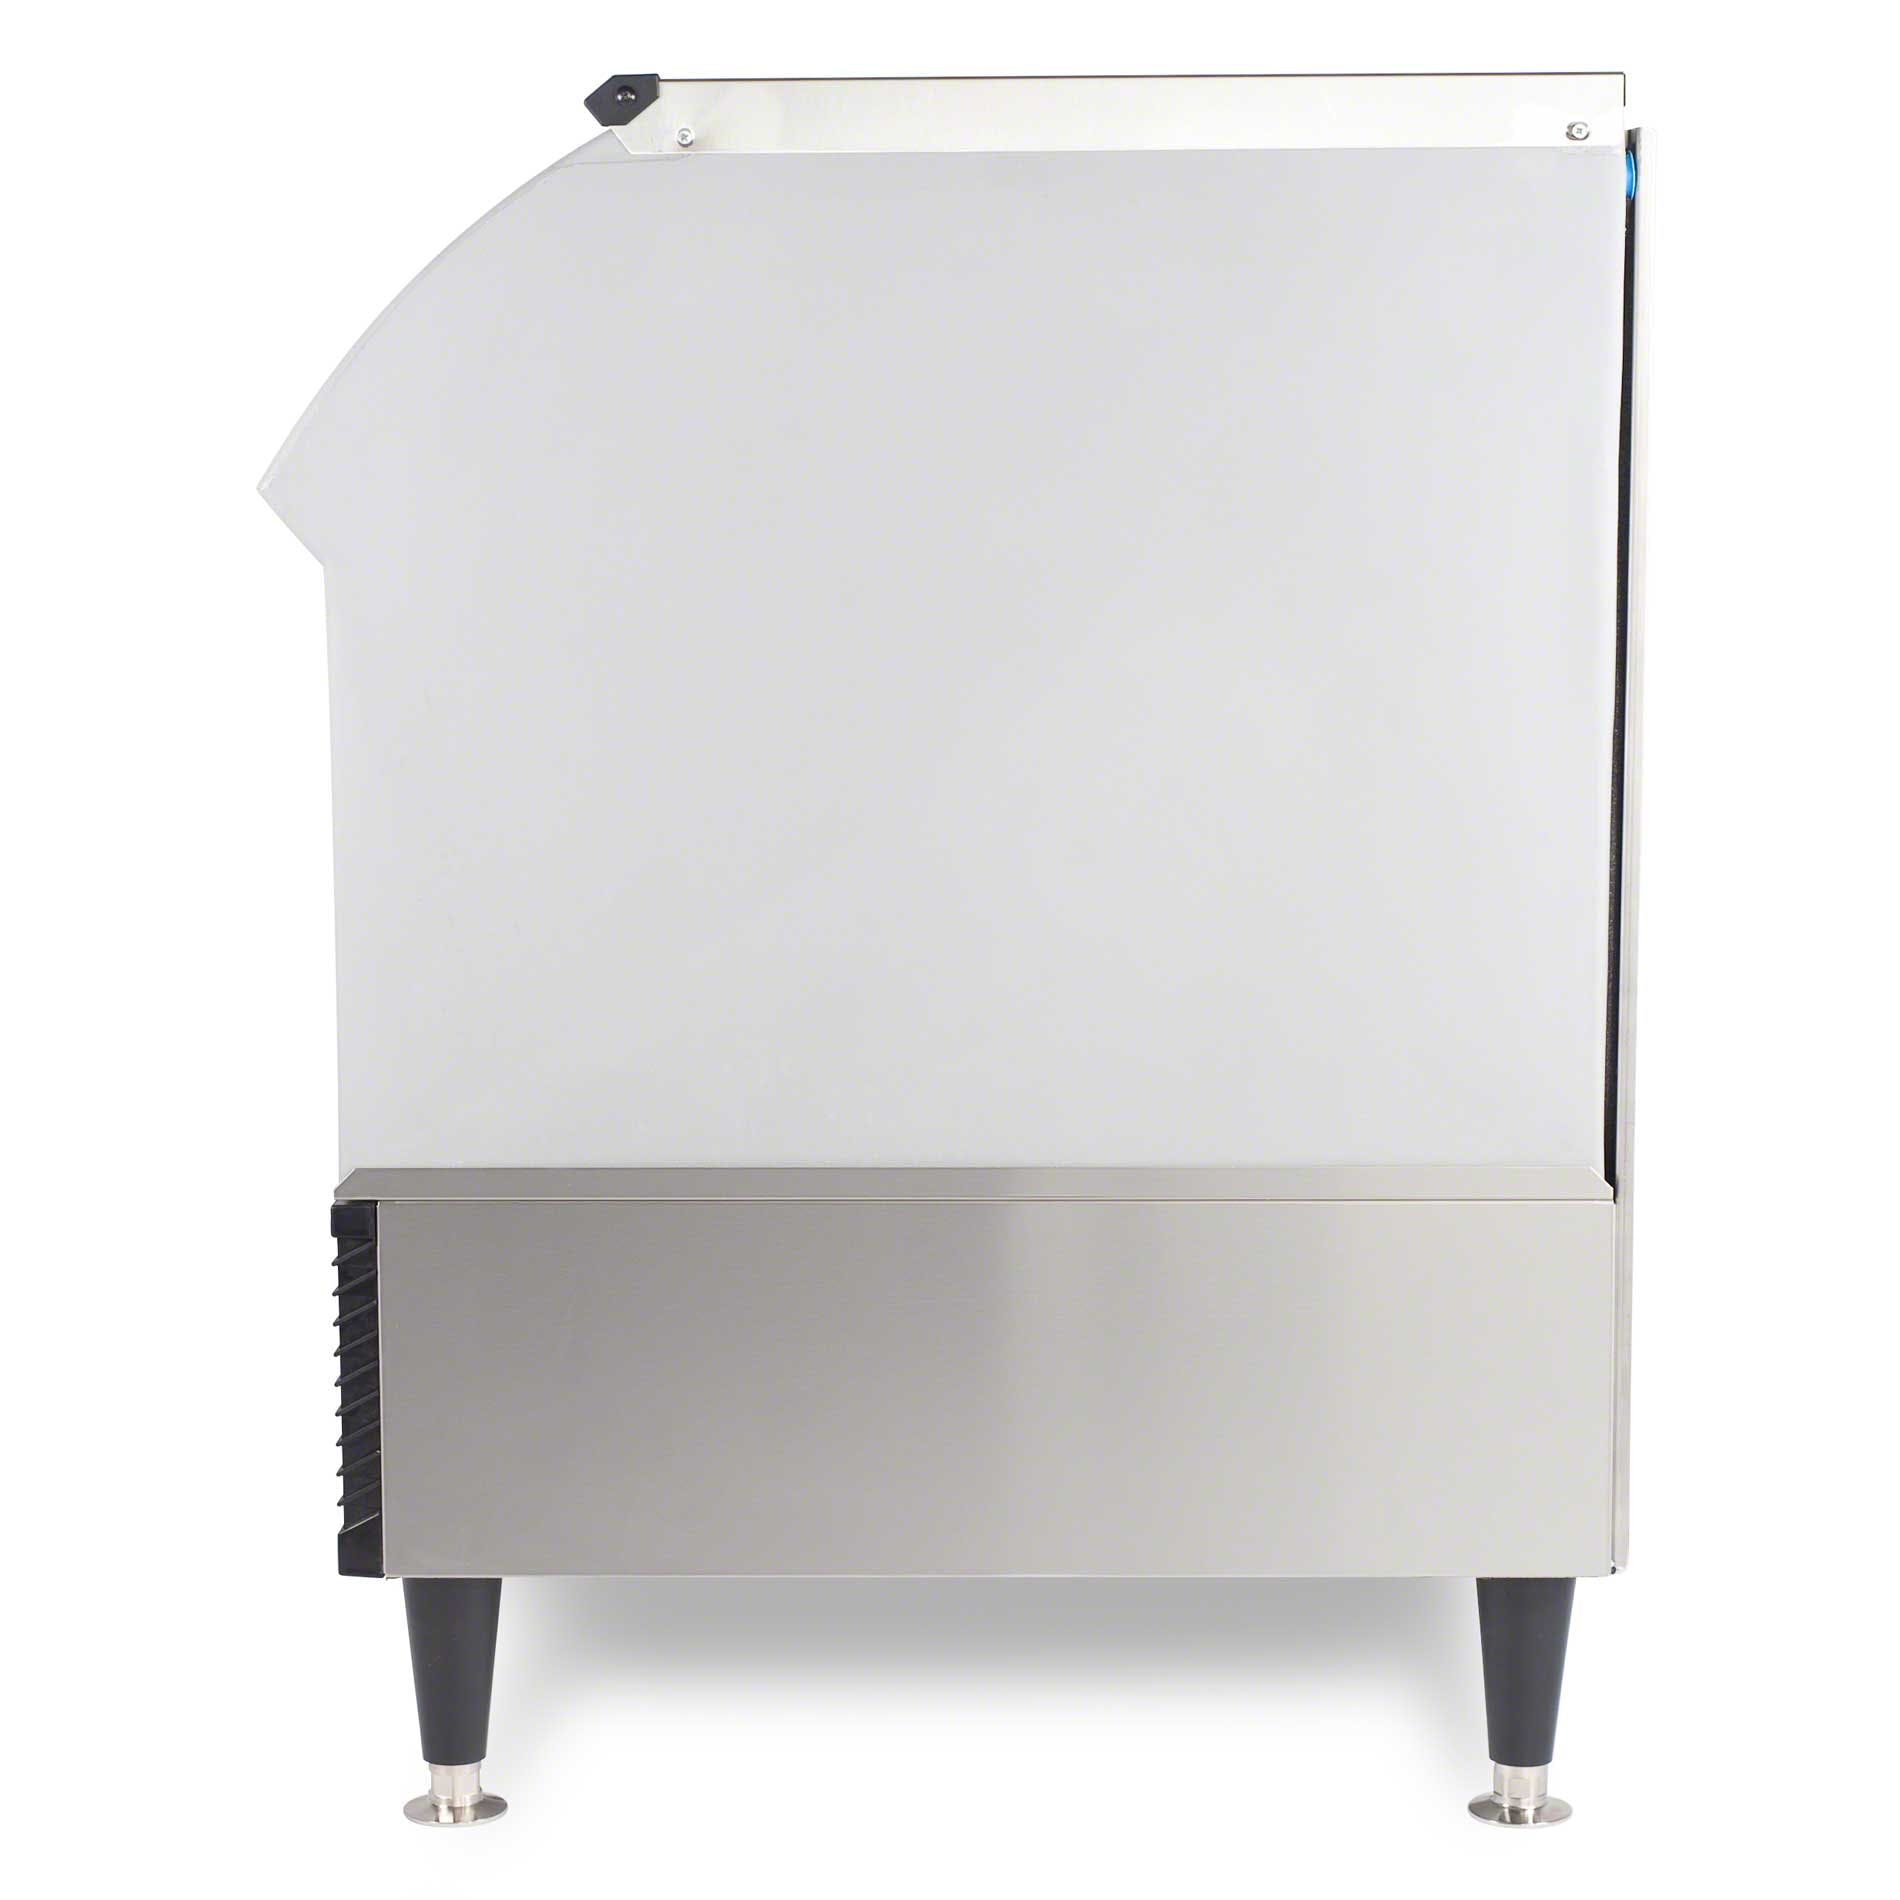 Ice-O-Matic - ICEU150HW 174 lb Self-Contained Half Cube Ice Machine - sold by Food Service Warehouse